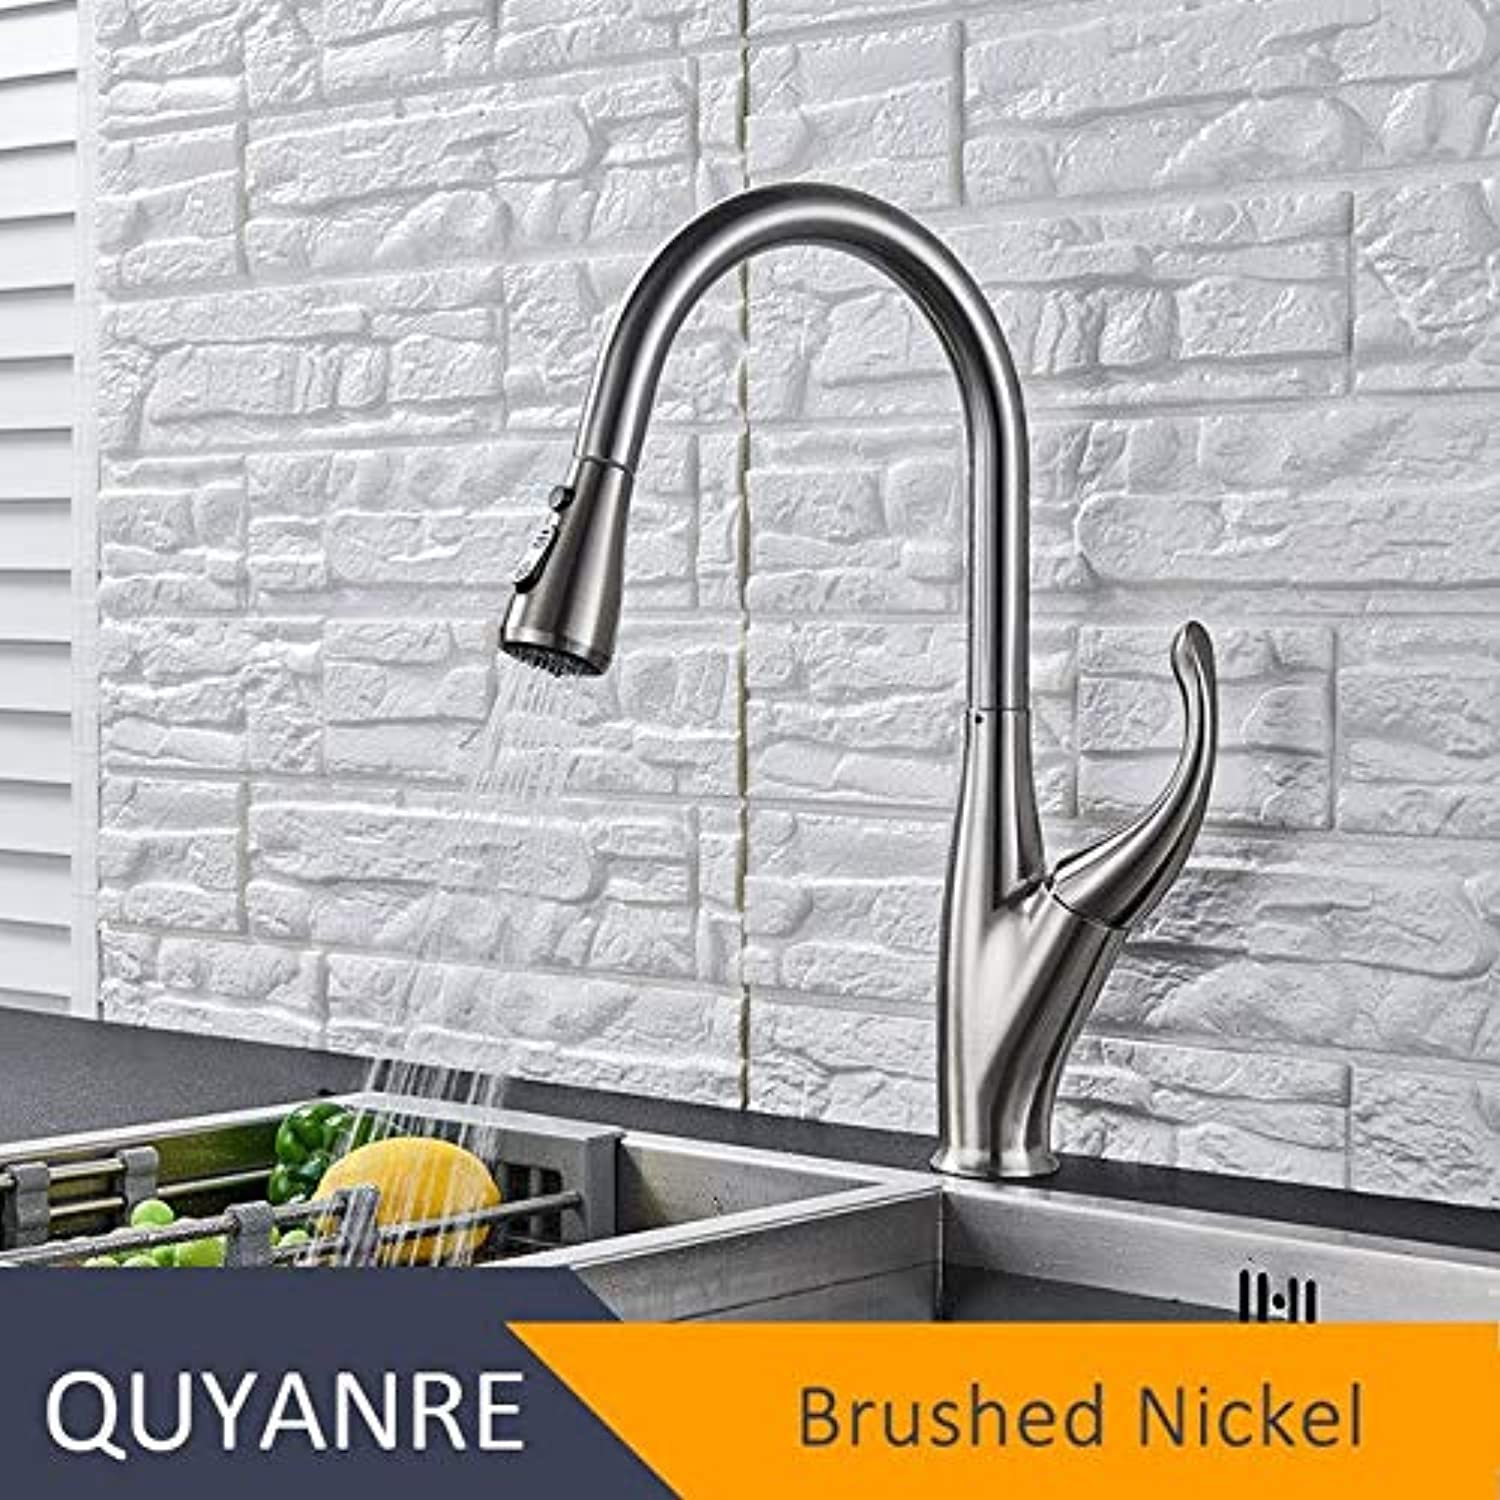 U-Enjoy Chandelier Black Kitchen Matte Faucet Out Top Quality Faucet Pull Single Handle Mixer 360 Degree Swivel Tap Water Mixer Tap Bathroom Mixer Tap Free Shipping [Brushed Nickel]